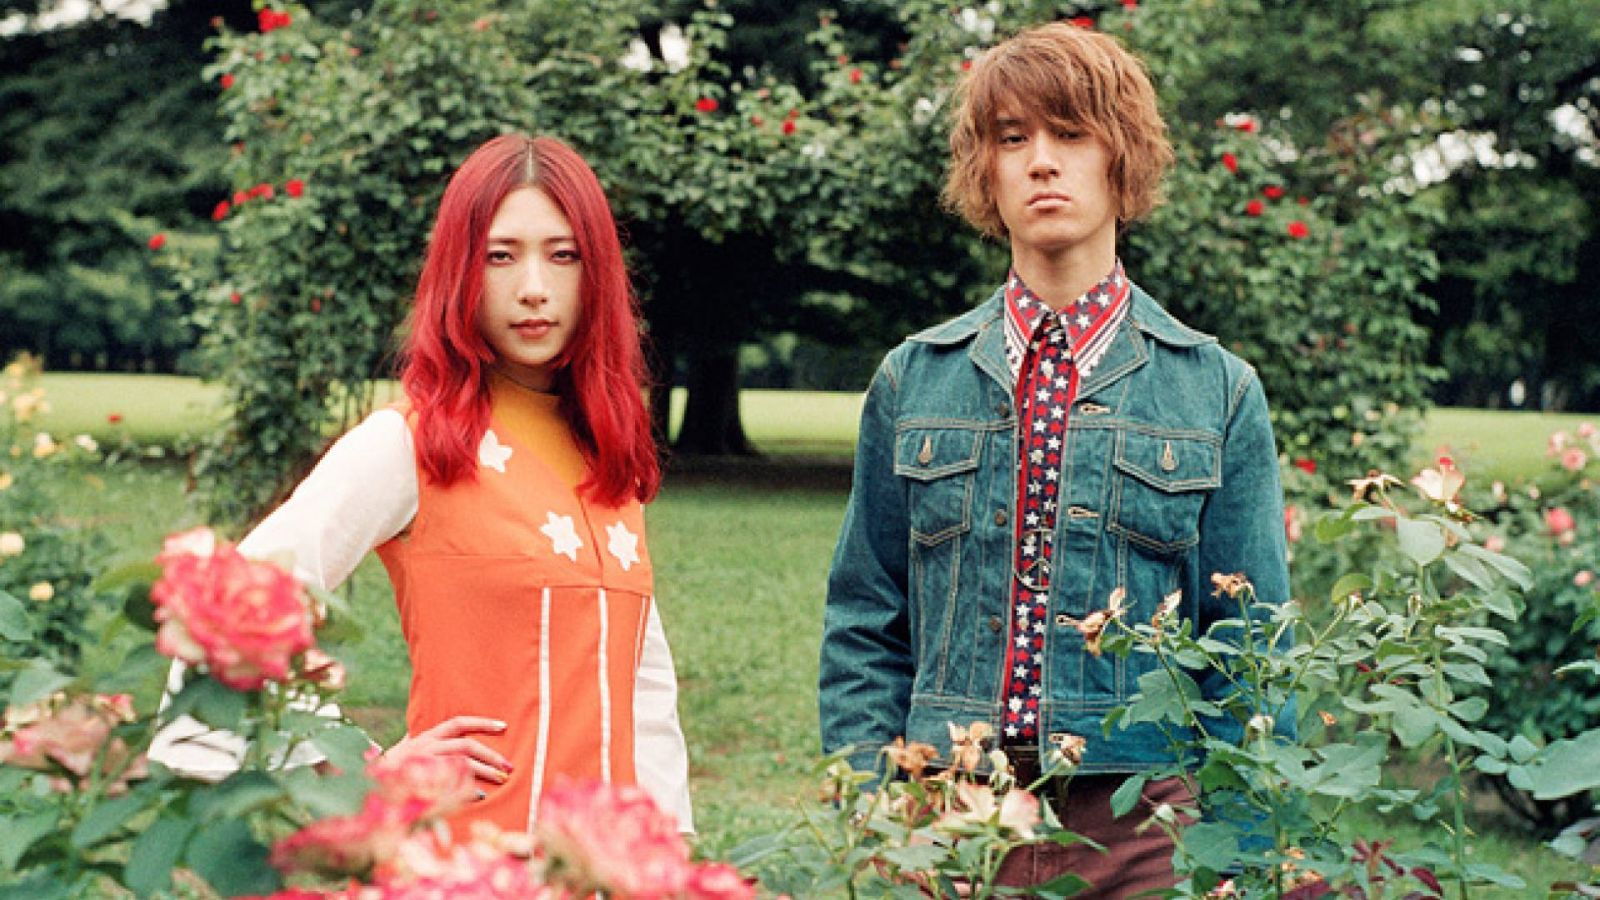 GLIM SPANKY © UNIVERSAL MUSIC LLC. All rights reserved.